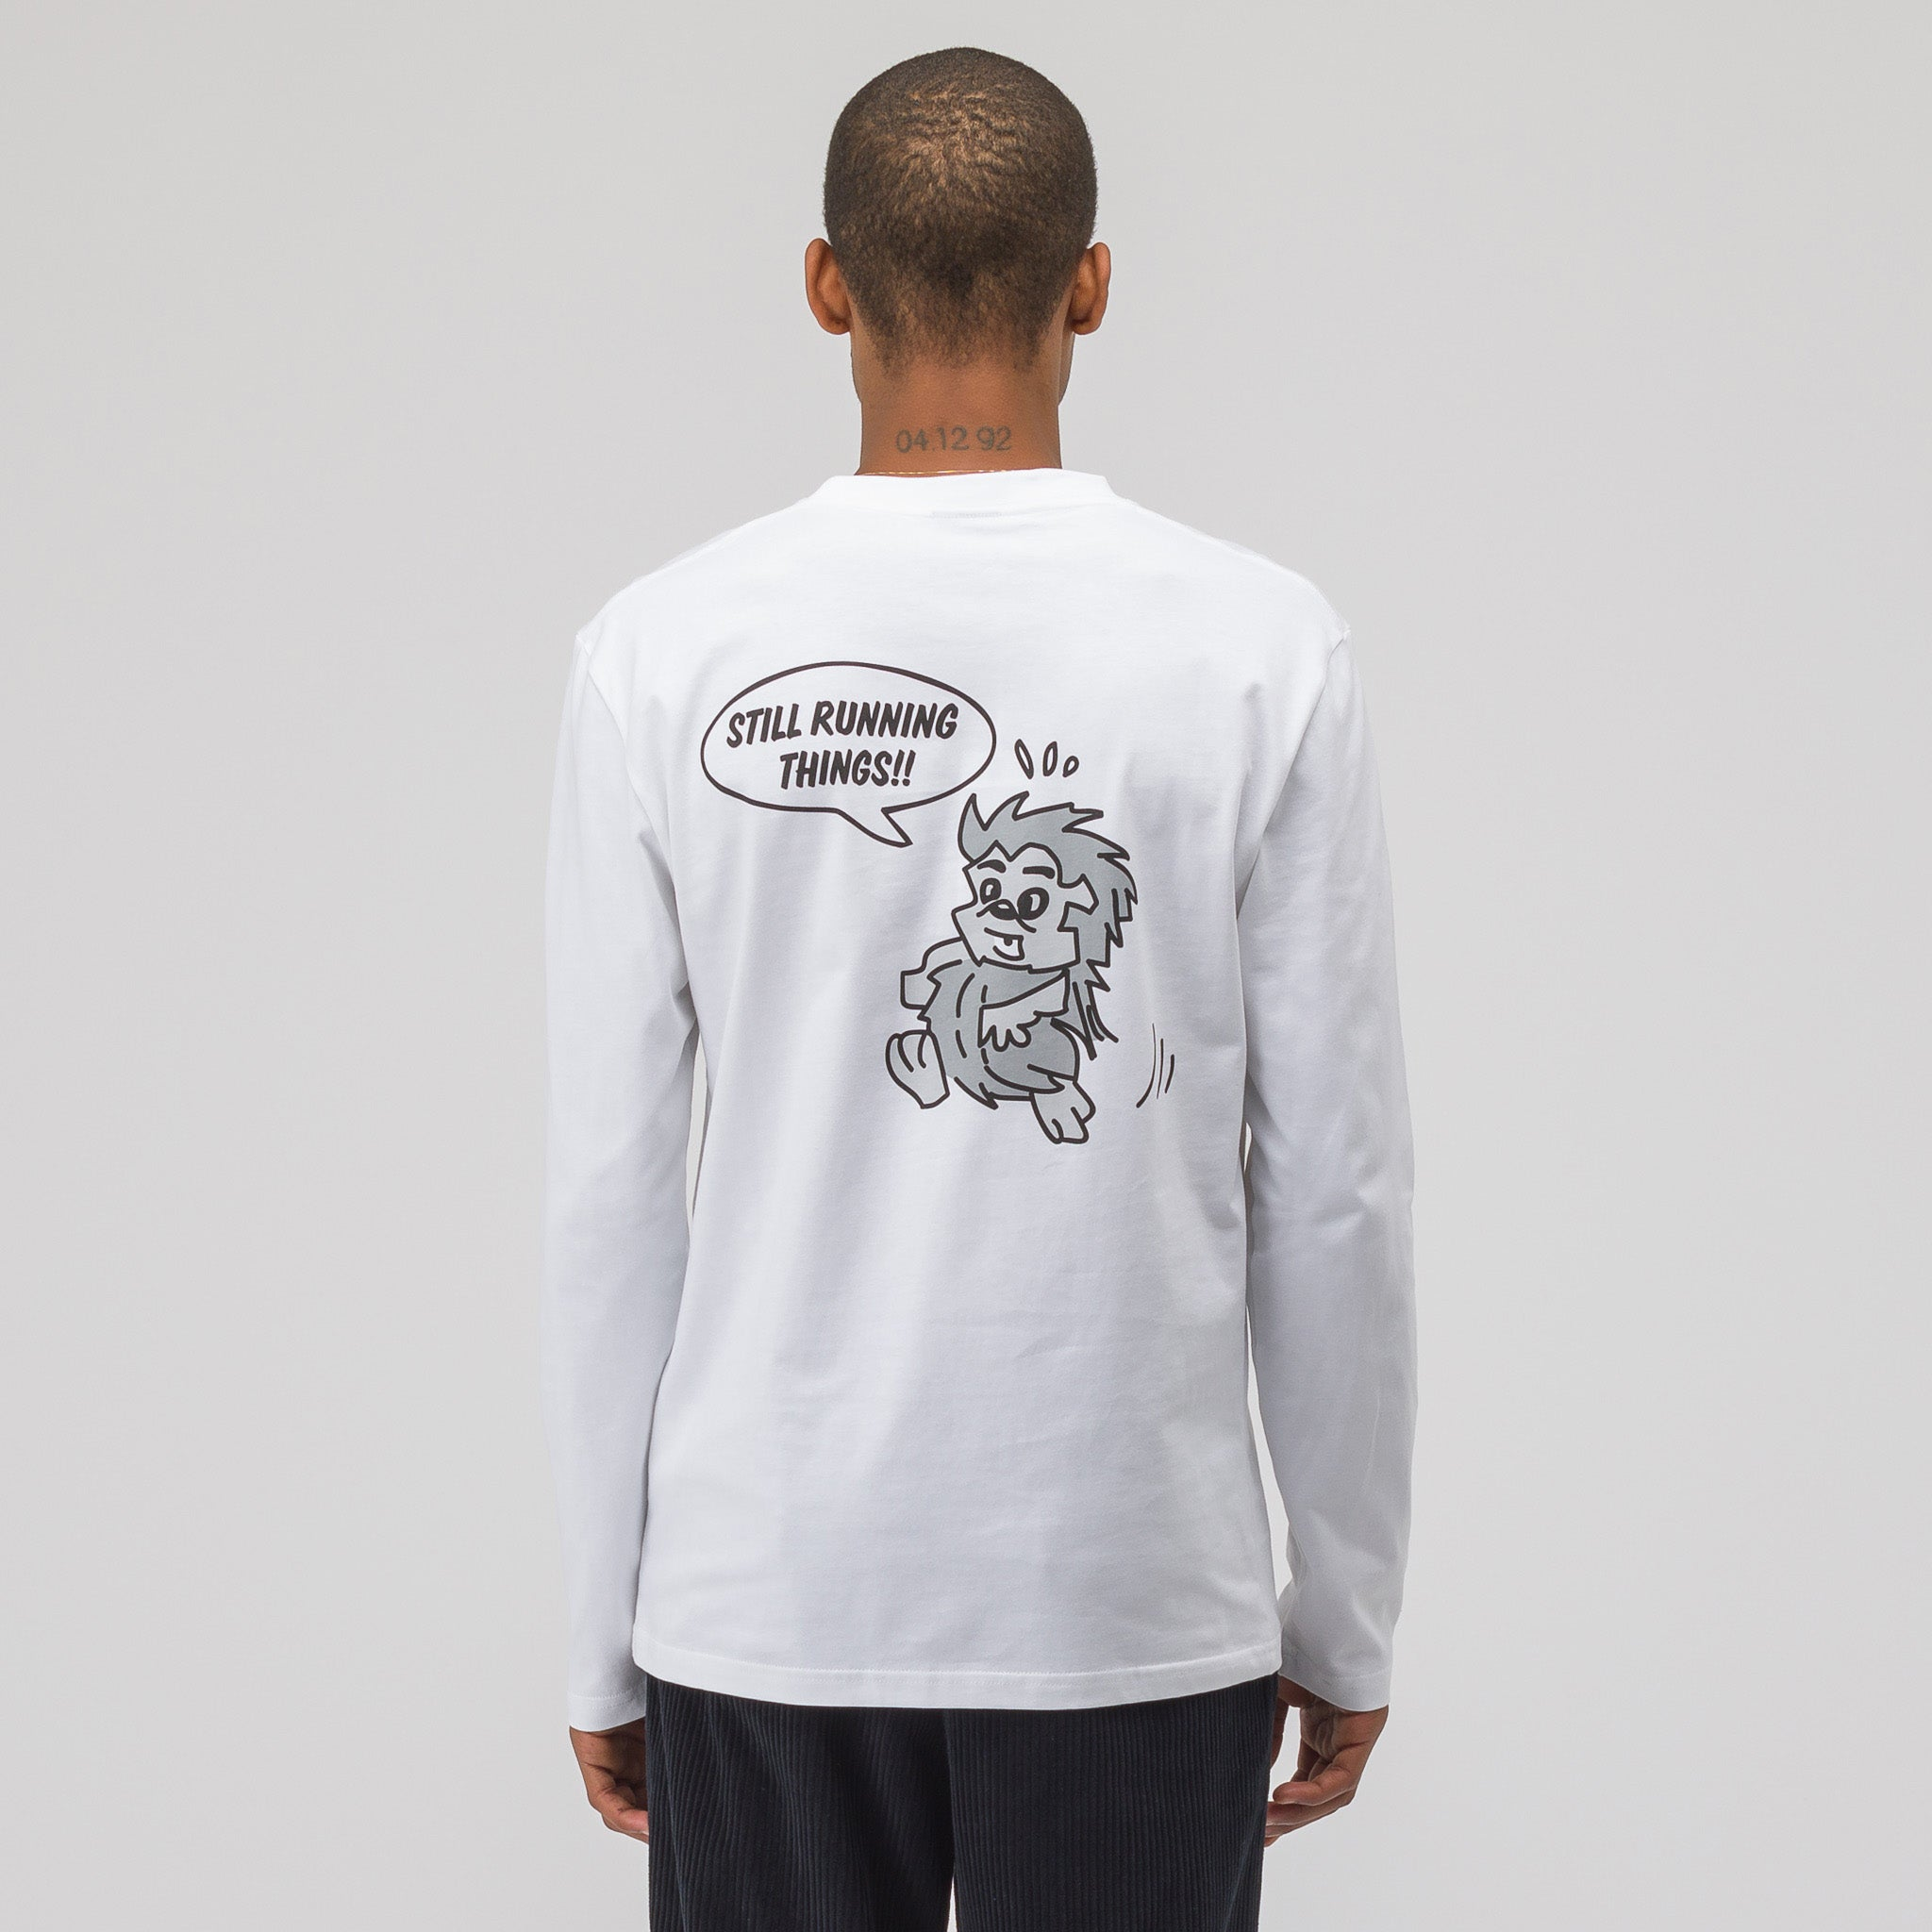 Souvenir Long Sleeve Anniversary T-Shirt in White